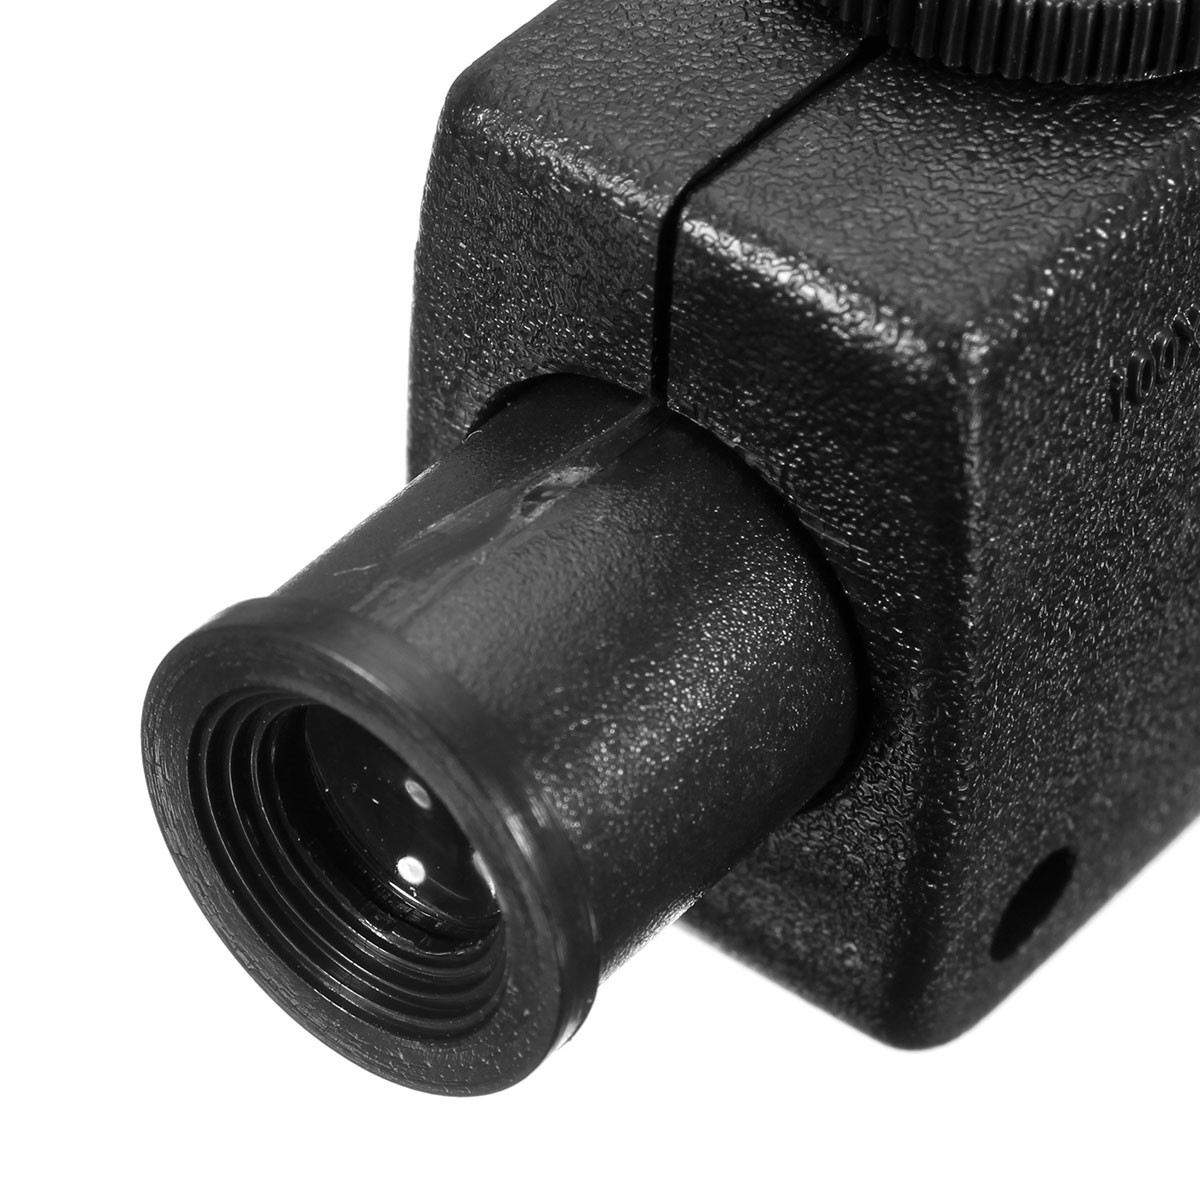 New 60x 100x Zoom Magnifier Microscope Jewelers Loupe